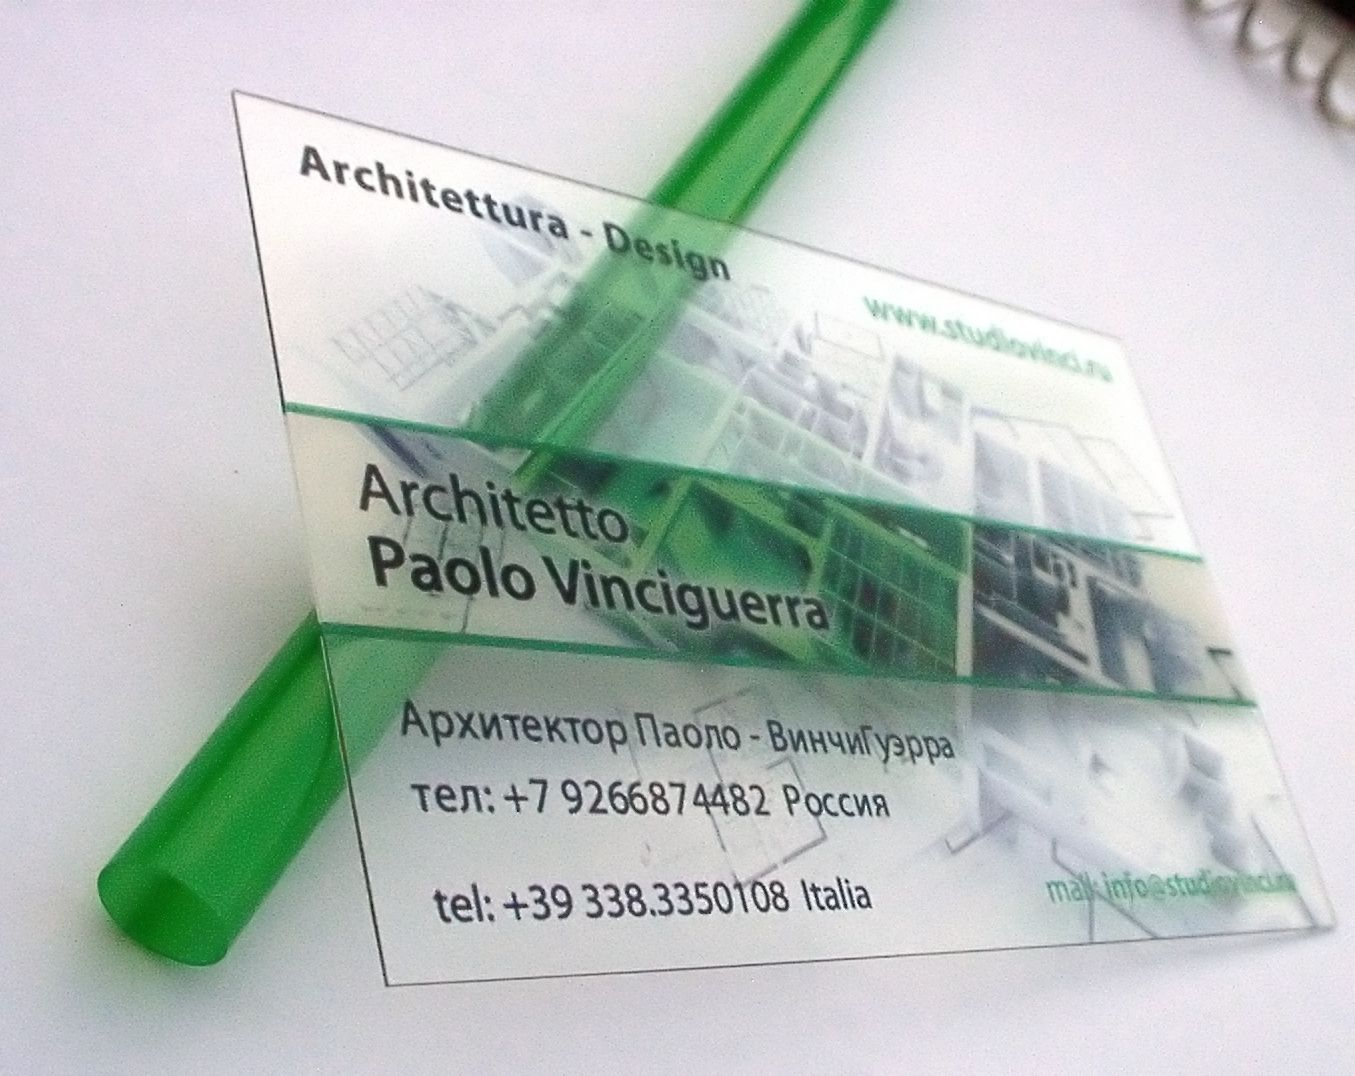 clear plastic business cards architect - http://www.bce-online.com ...